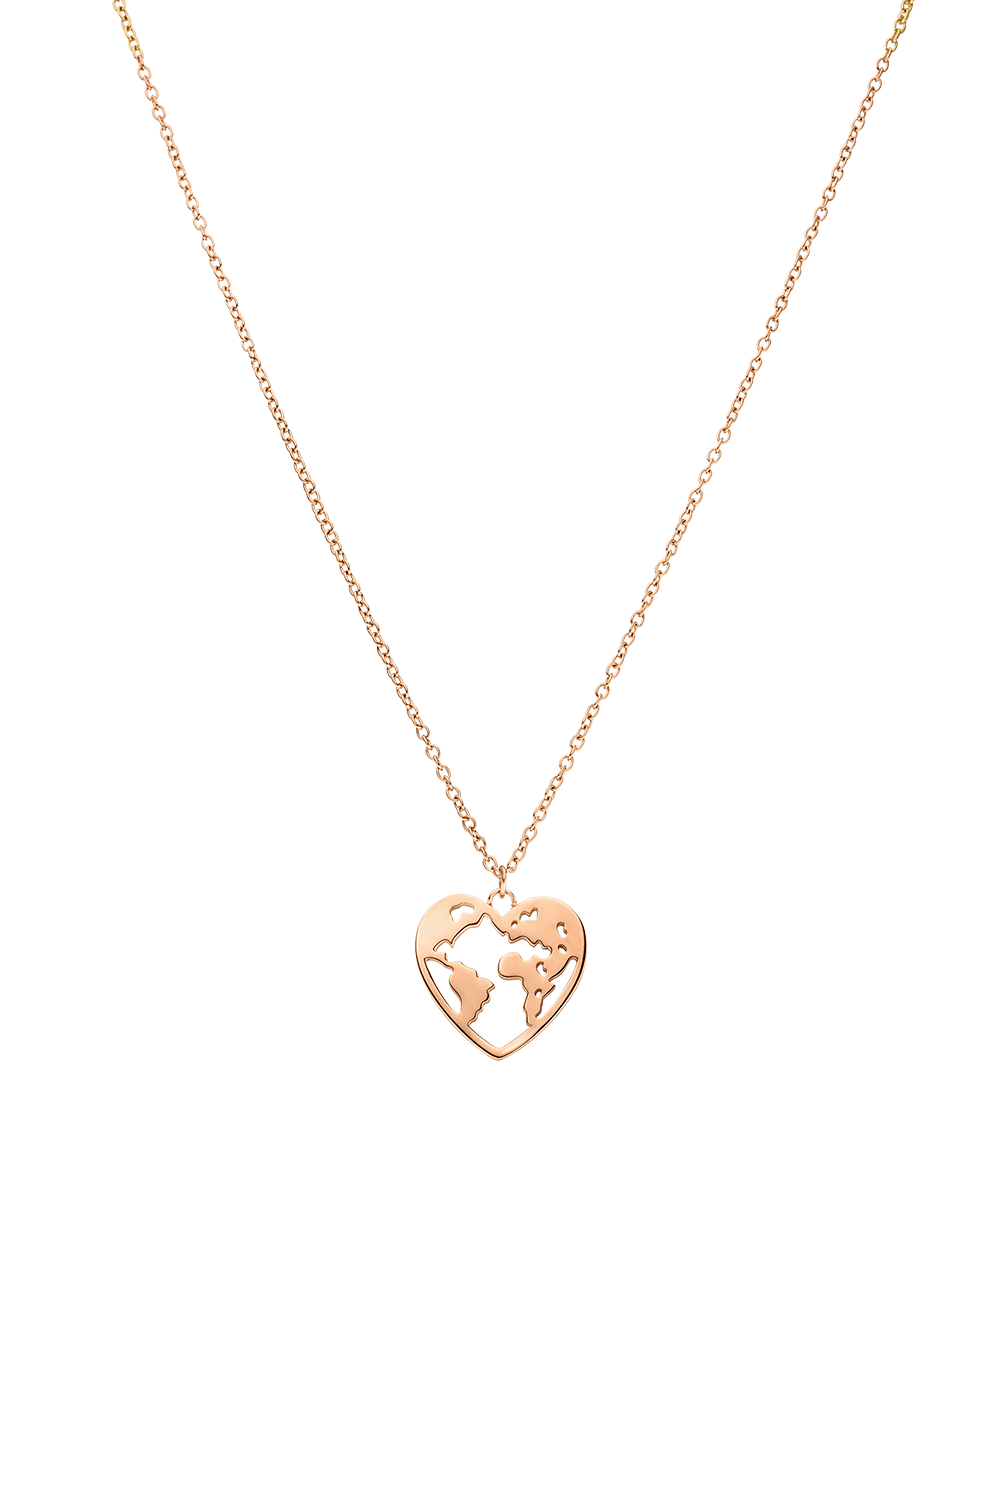 HEART SHAPED WORLD NECKLACE ROSÉGOLD